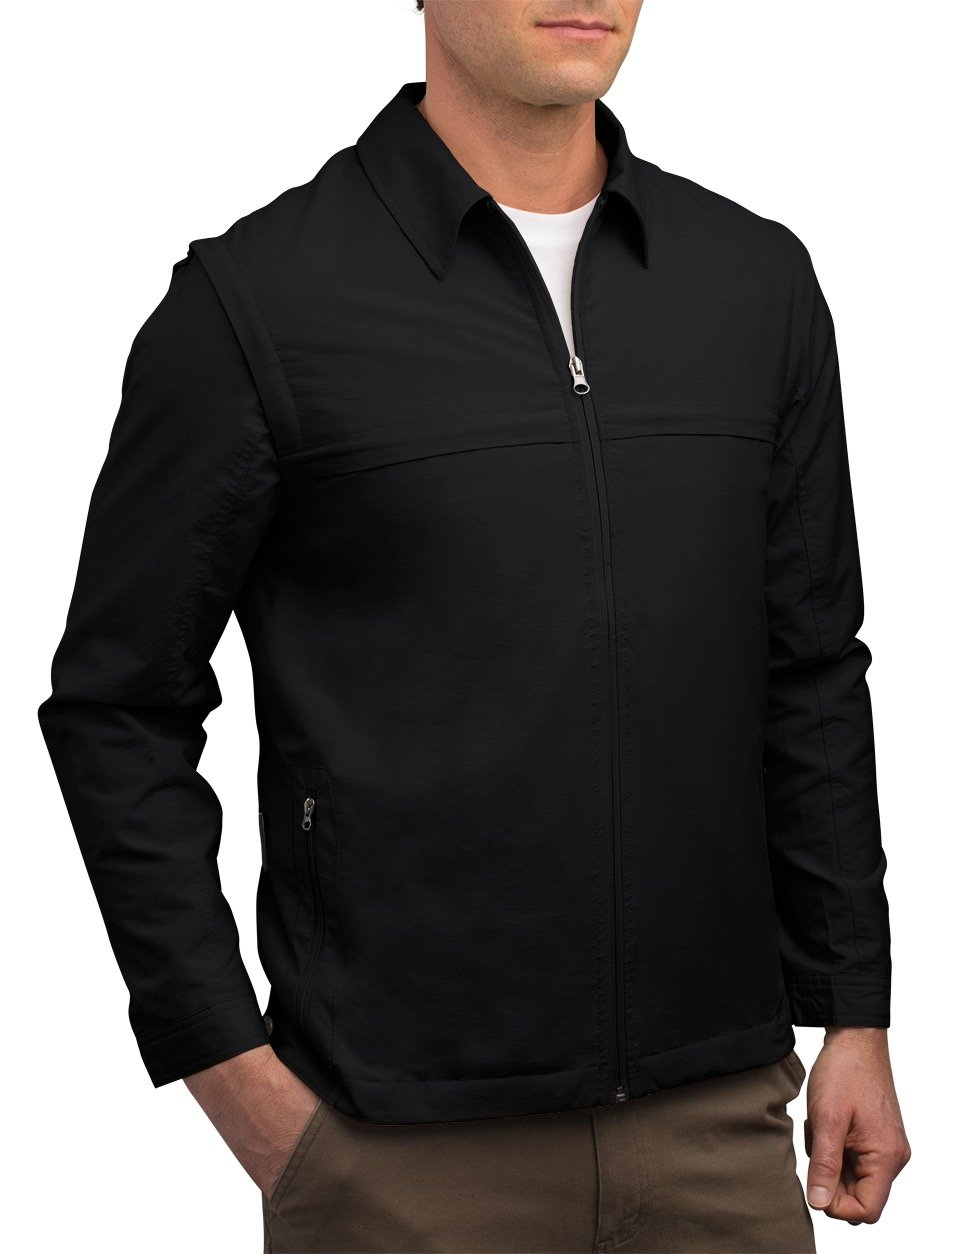 SCOTTeVEST Jacket - Travel Clothing for Men, Convertible Tactical Jacket & Vest (BLK M)